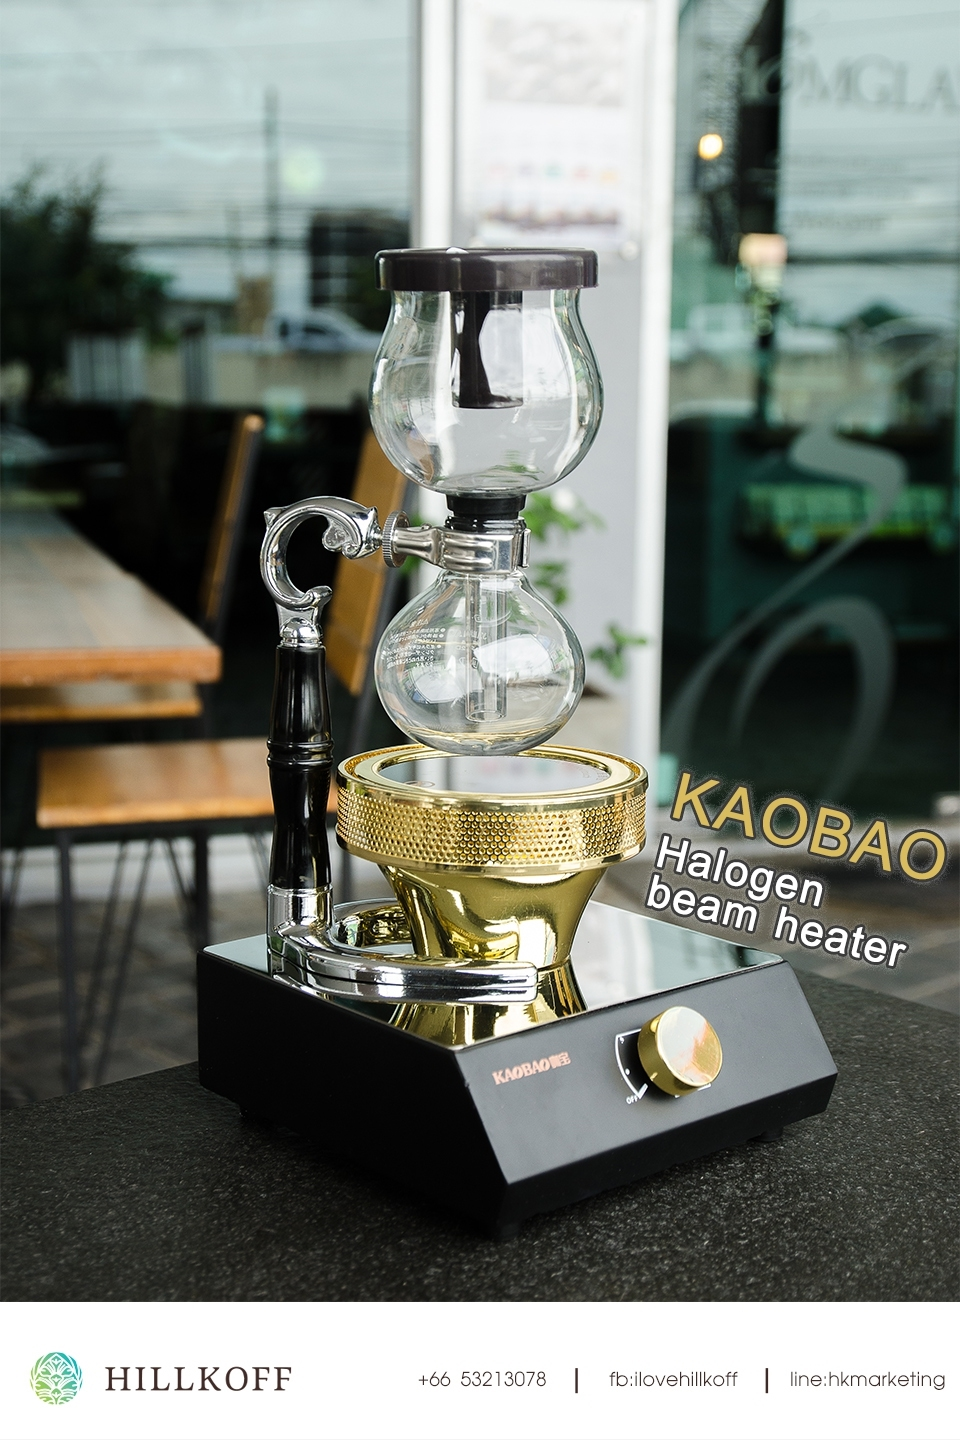 Kaobao Halogen beam heater